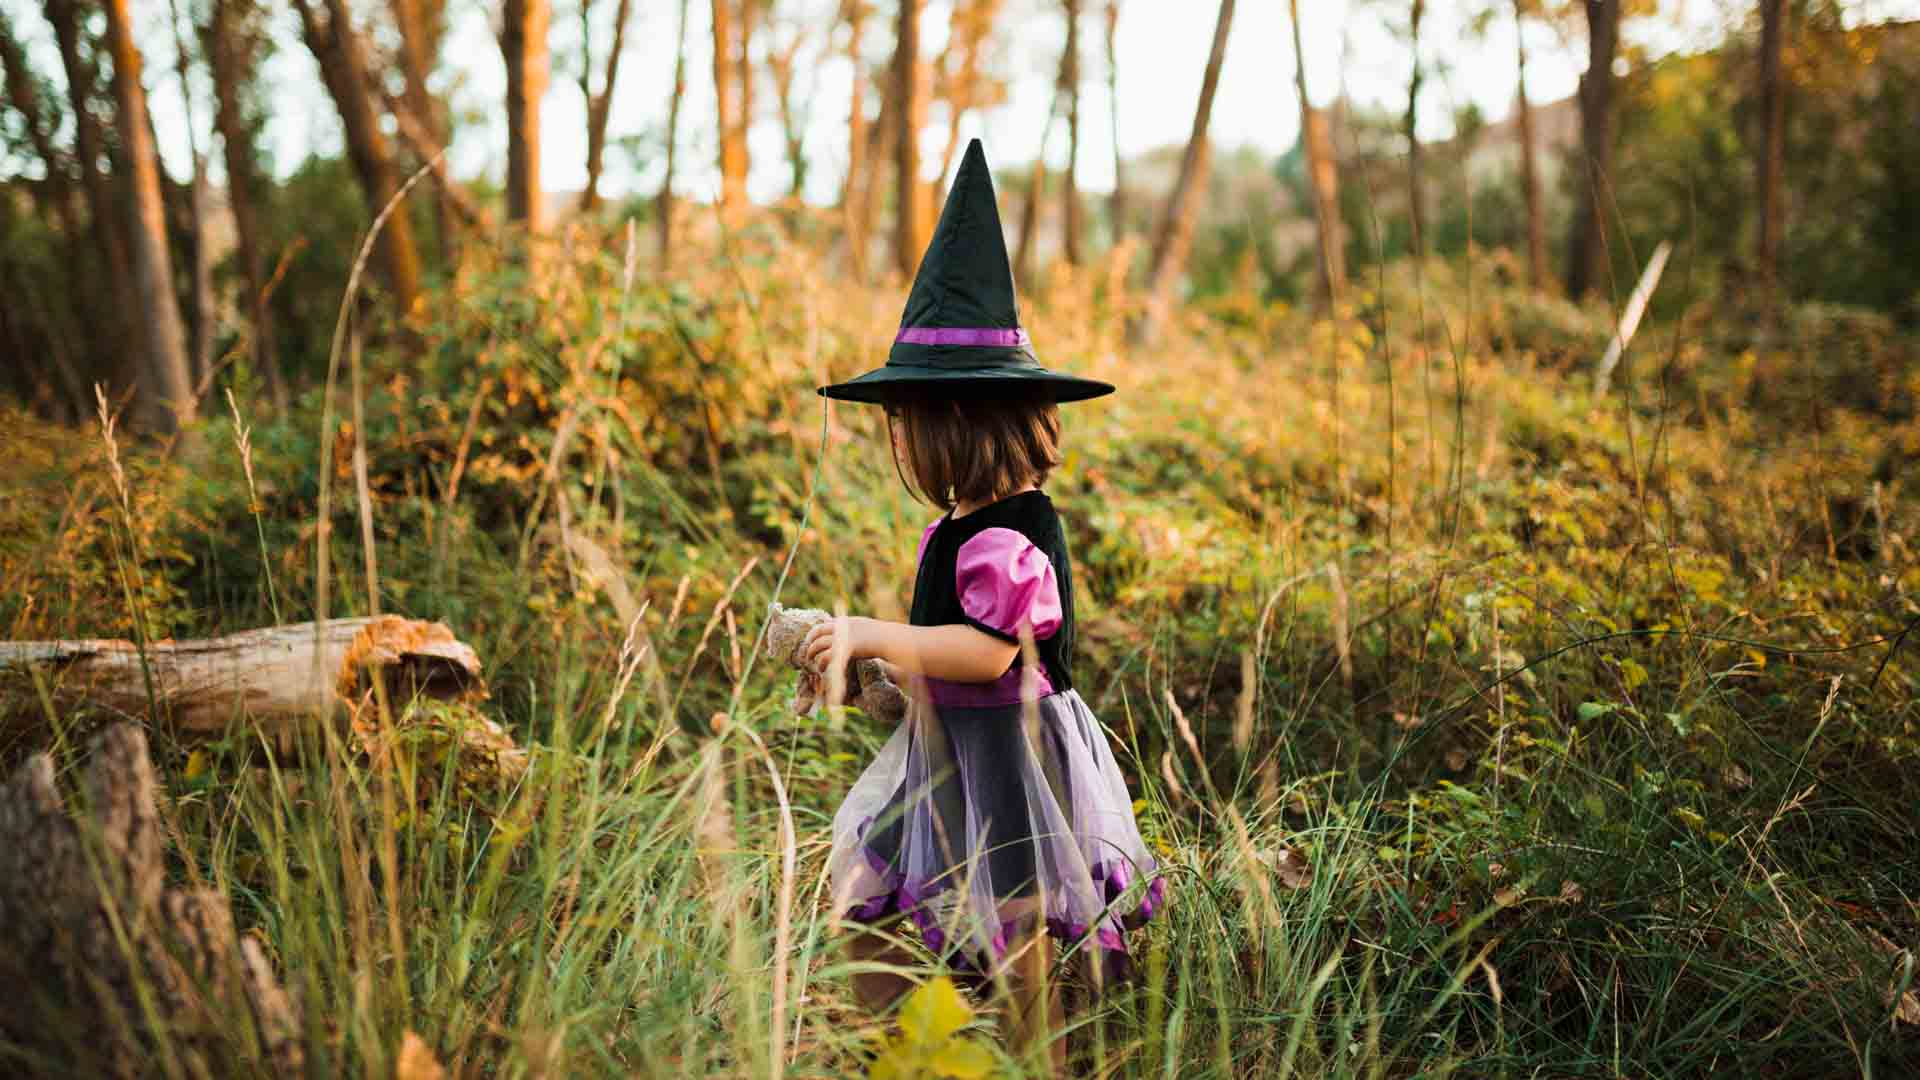 Little girl walking through a field wearing a witch hat.